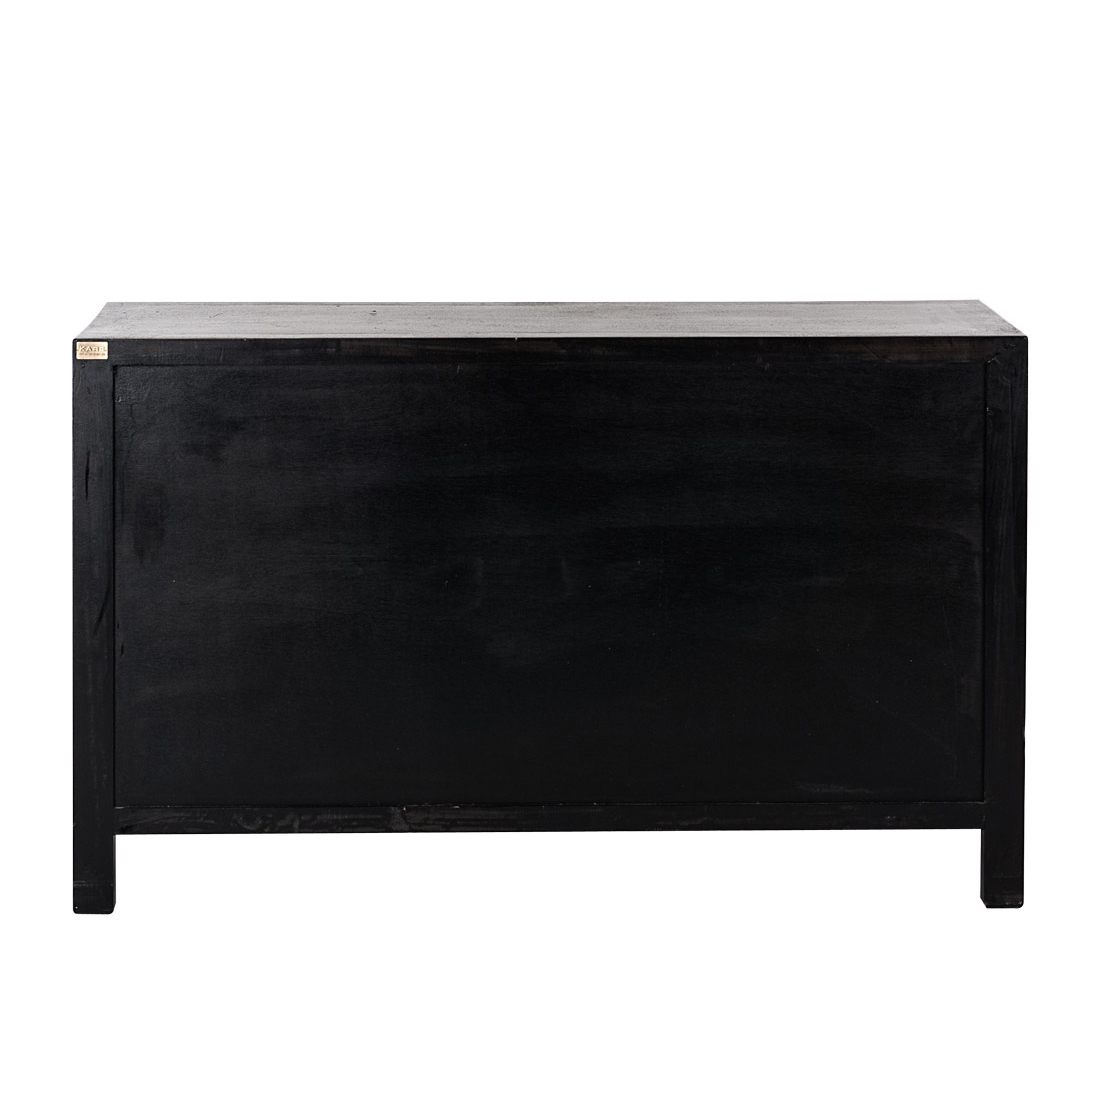 Kare design kommode sideboard pappelholz schwarz bunt for Design kommode